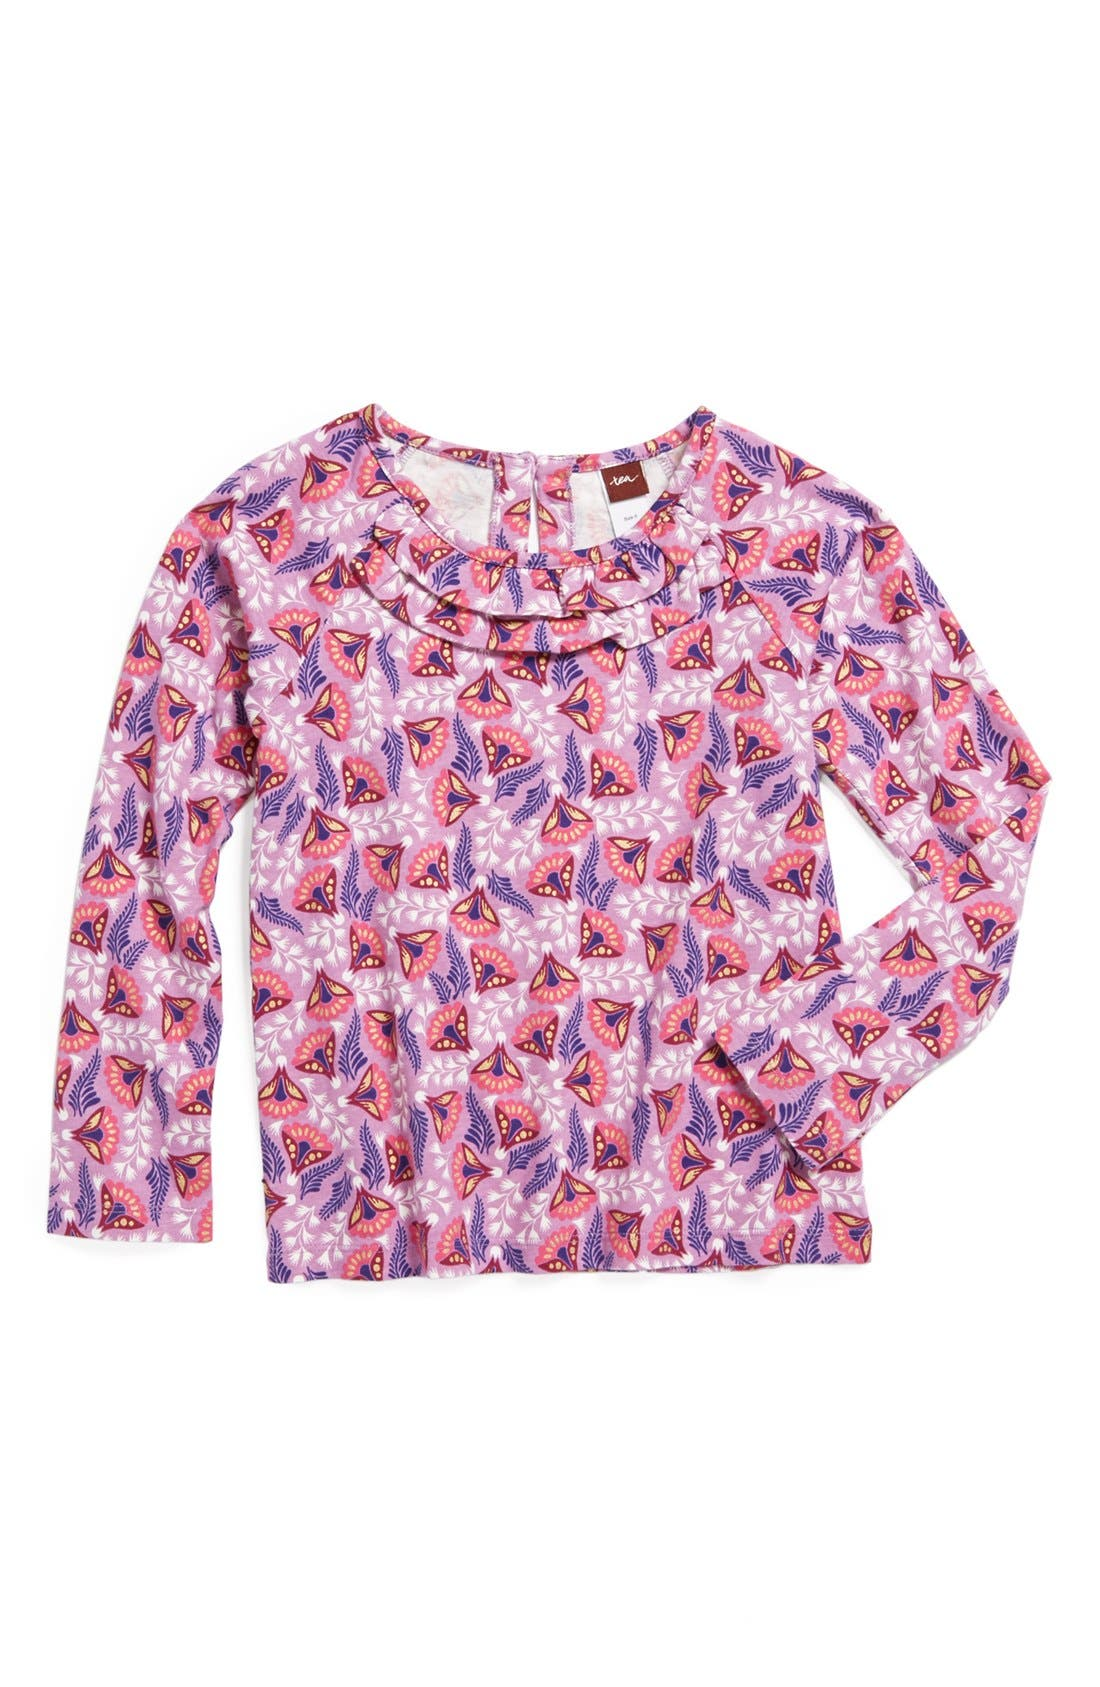 Main Image - Tea Collection 'Sparkle Blossom' Ruffle Top (Toddler Girls, Little Girls & Big Girls)